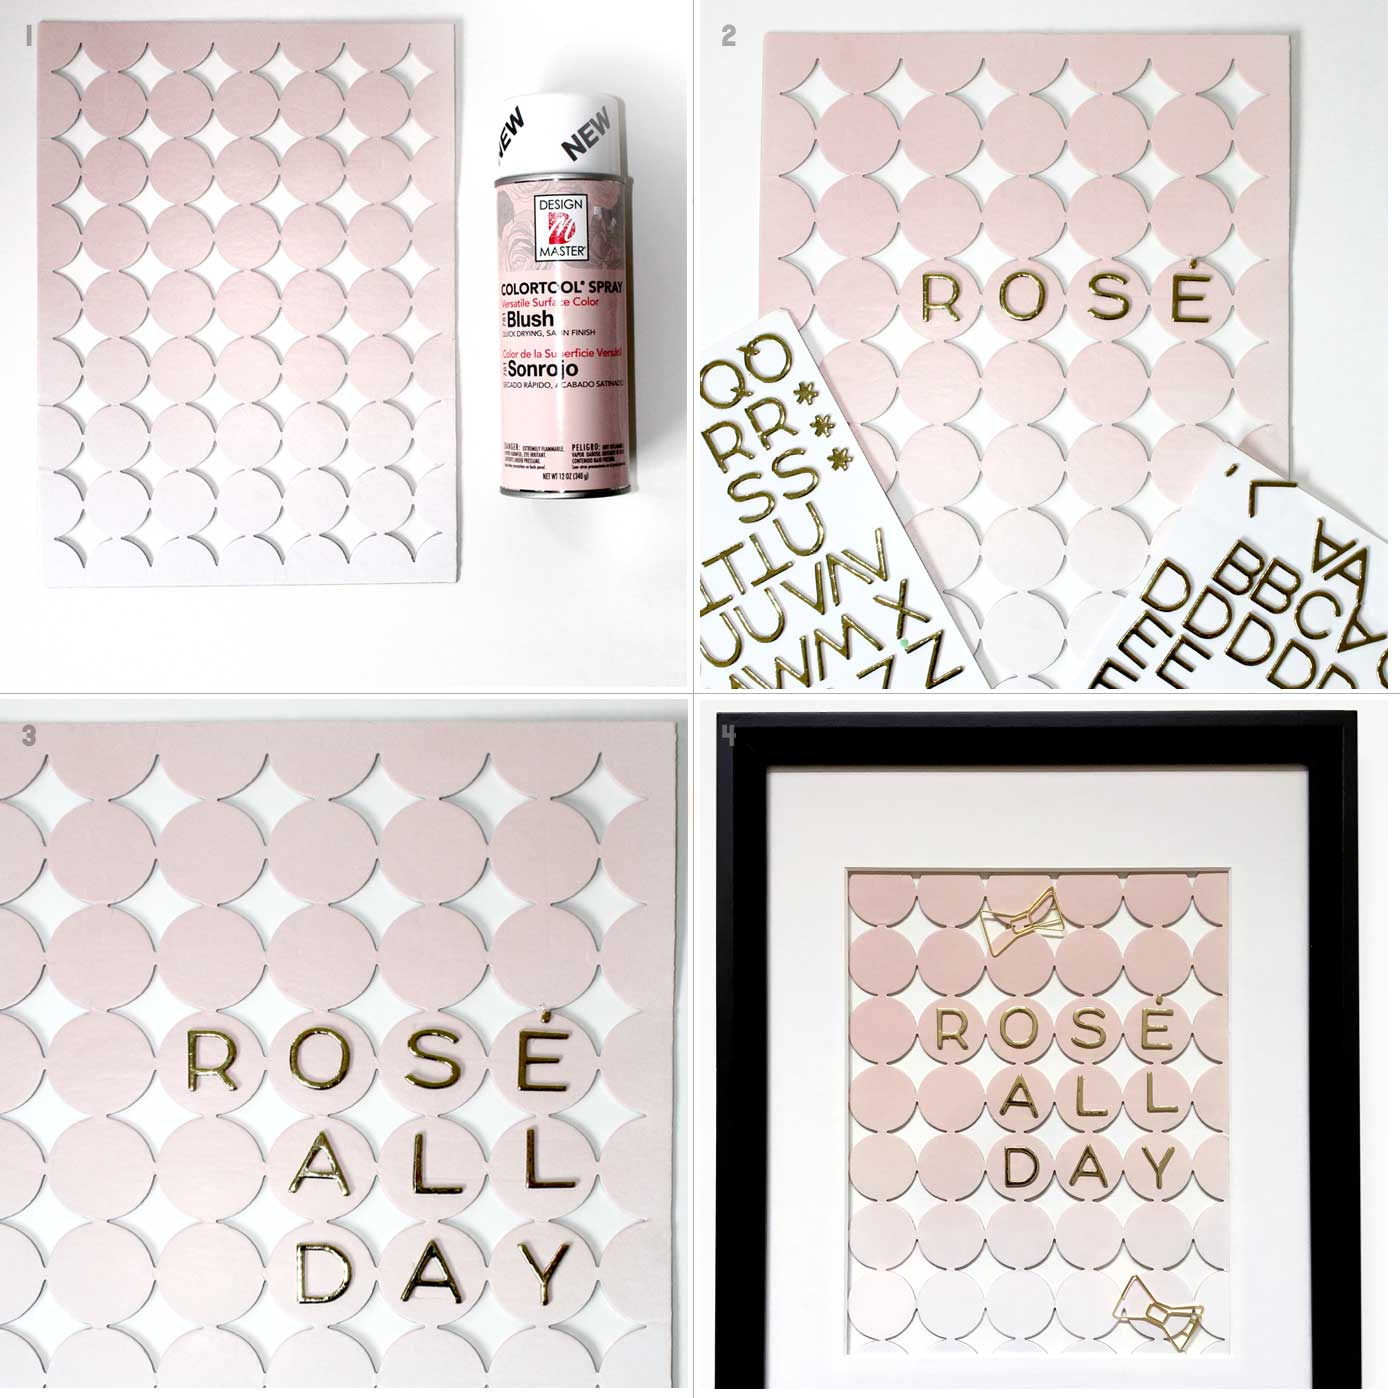 Rose all day artwork diy kraft&mint blog